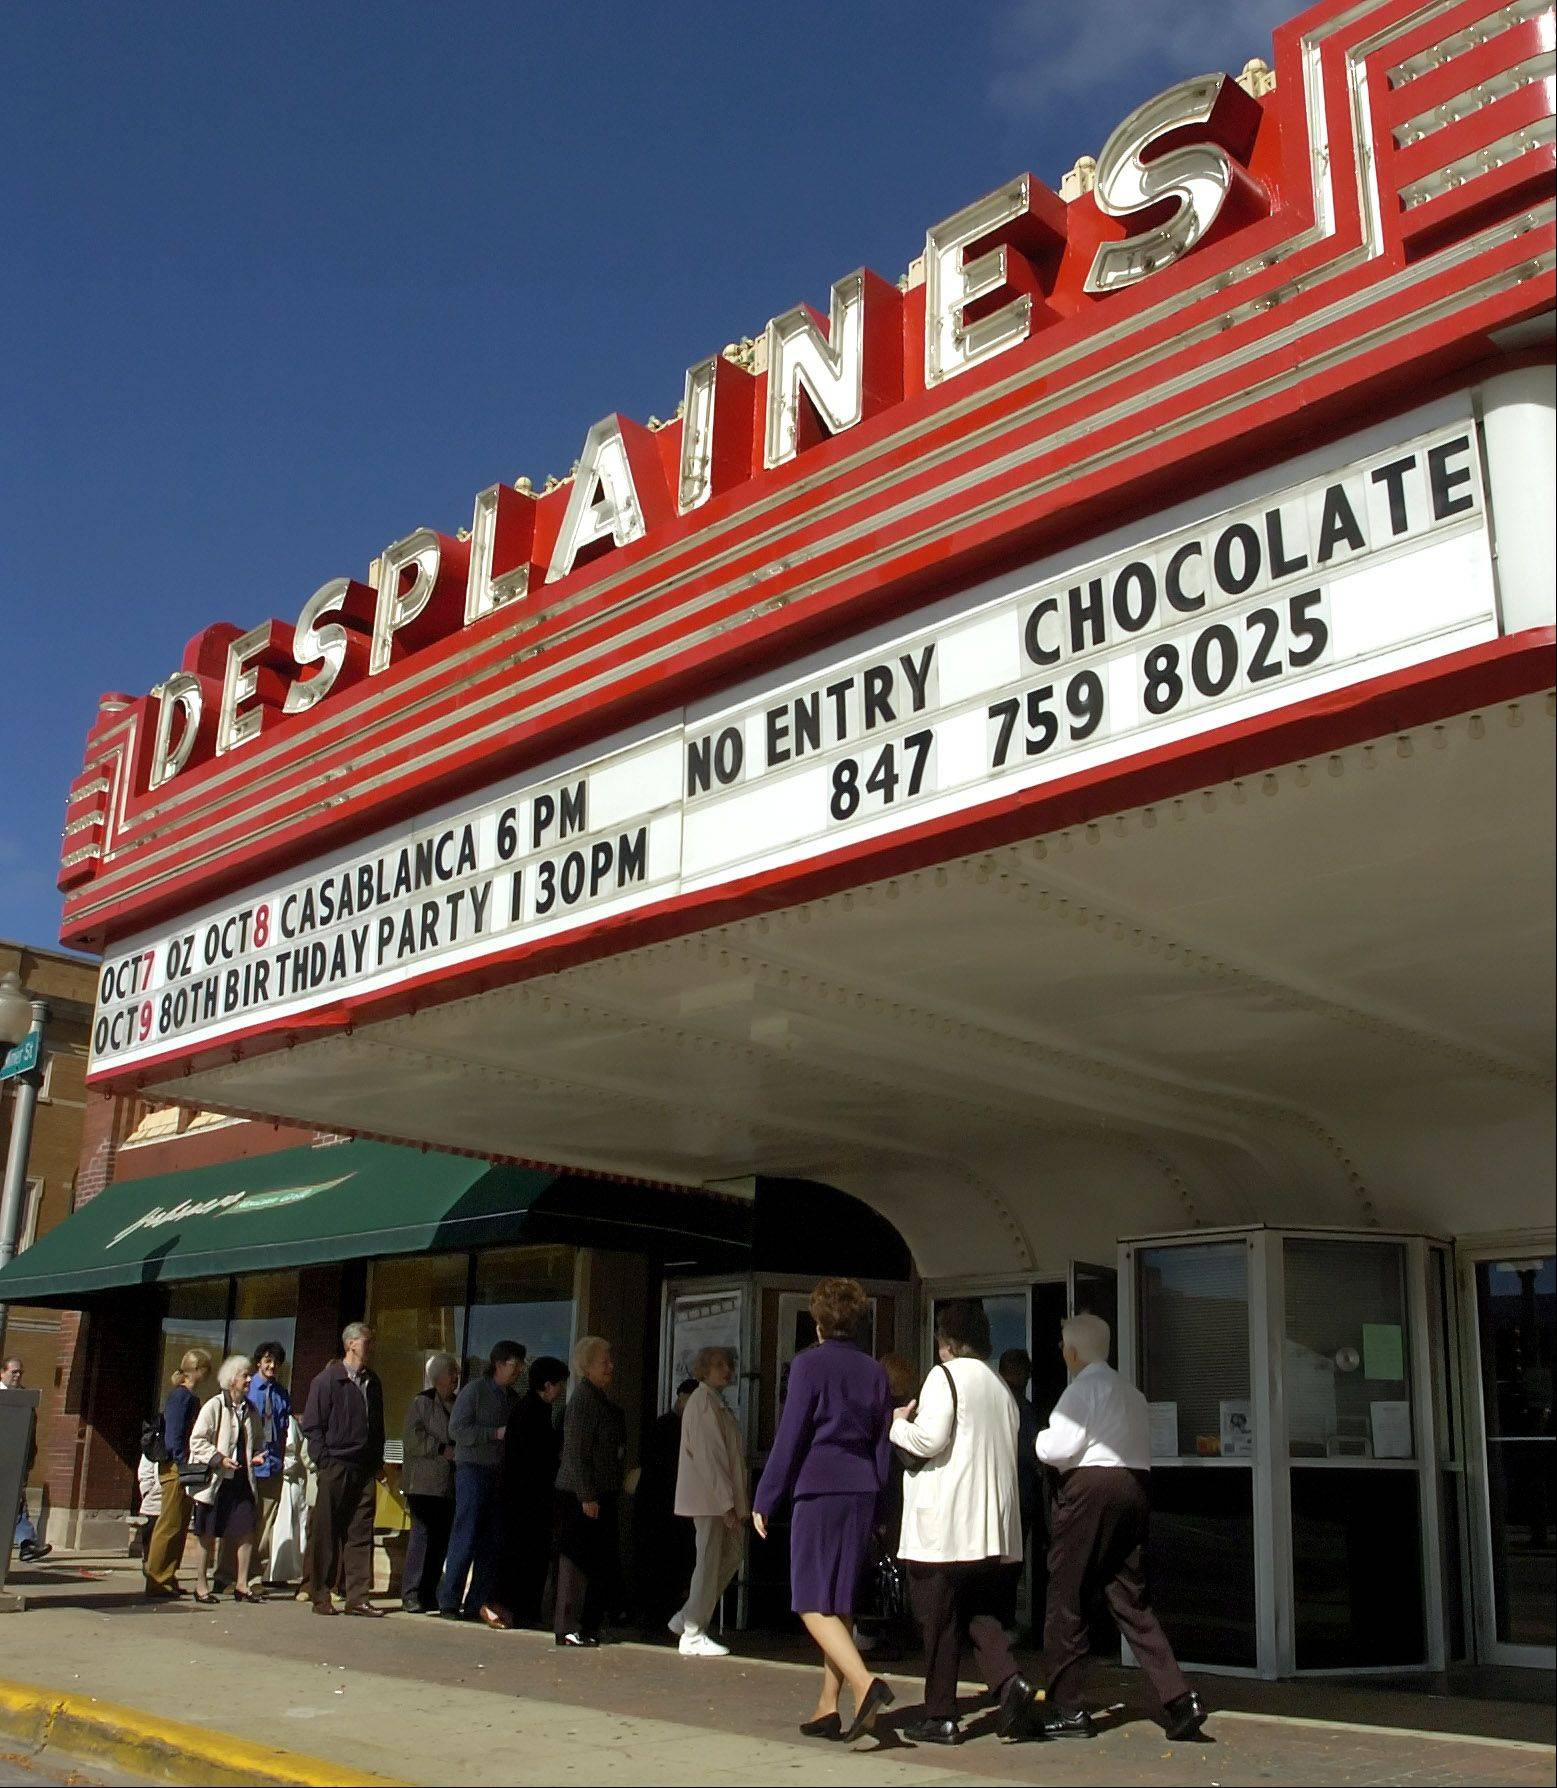 Des Plaines alderman next week will discuss whether to give operators of the Des Plaines Theater another six months to address numerous code violations that, if not fixed, could force the historic facility to close.